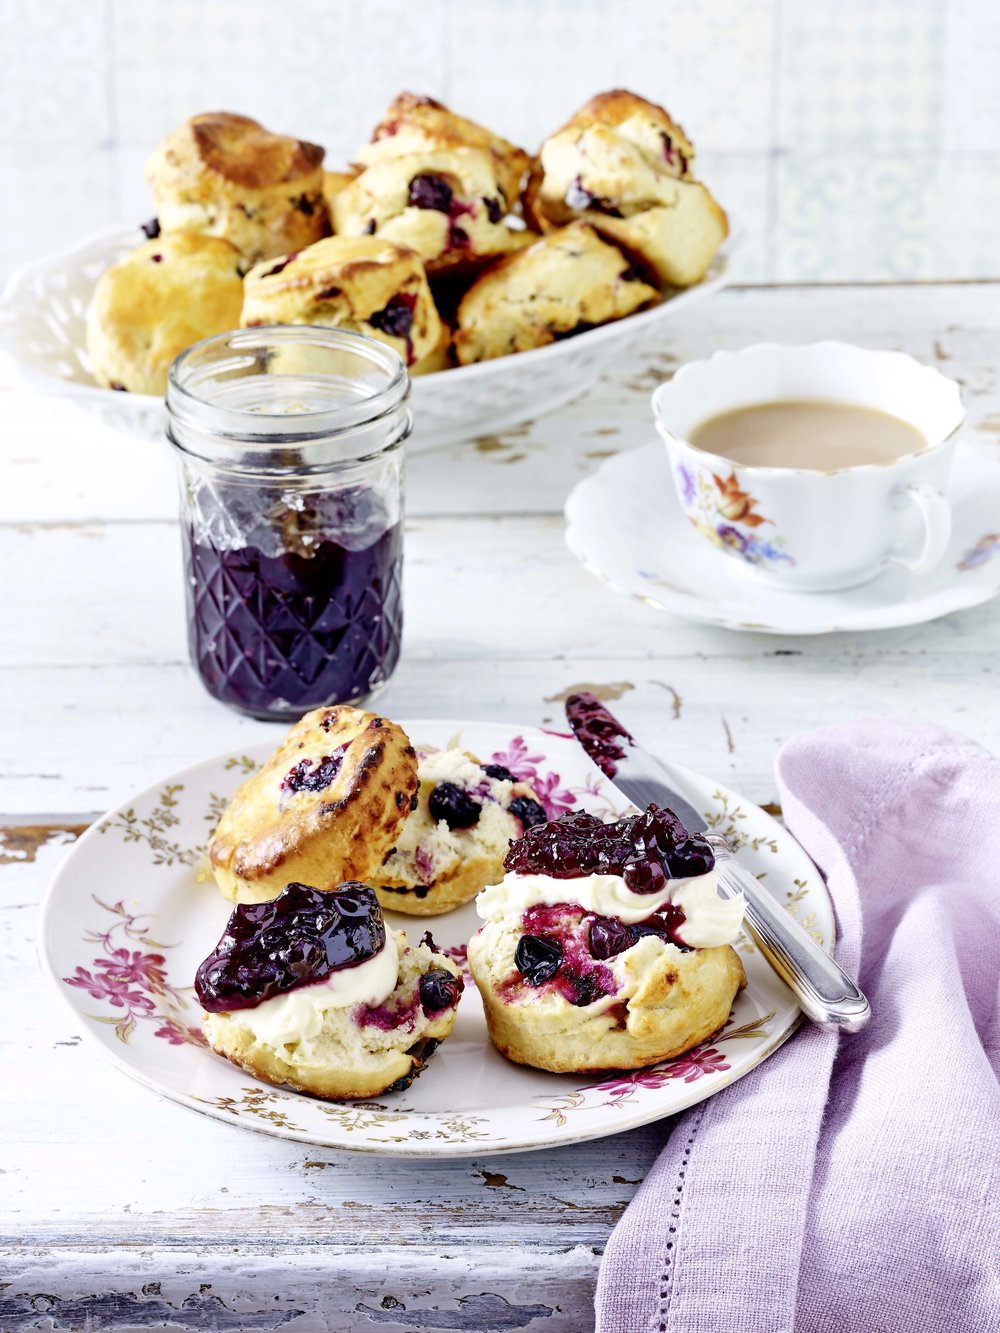 Blackcurrants make a delicious, seasonal alternative in a cream tea. From a recipe in the July 2018 issue of LandScape